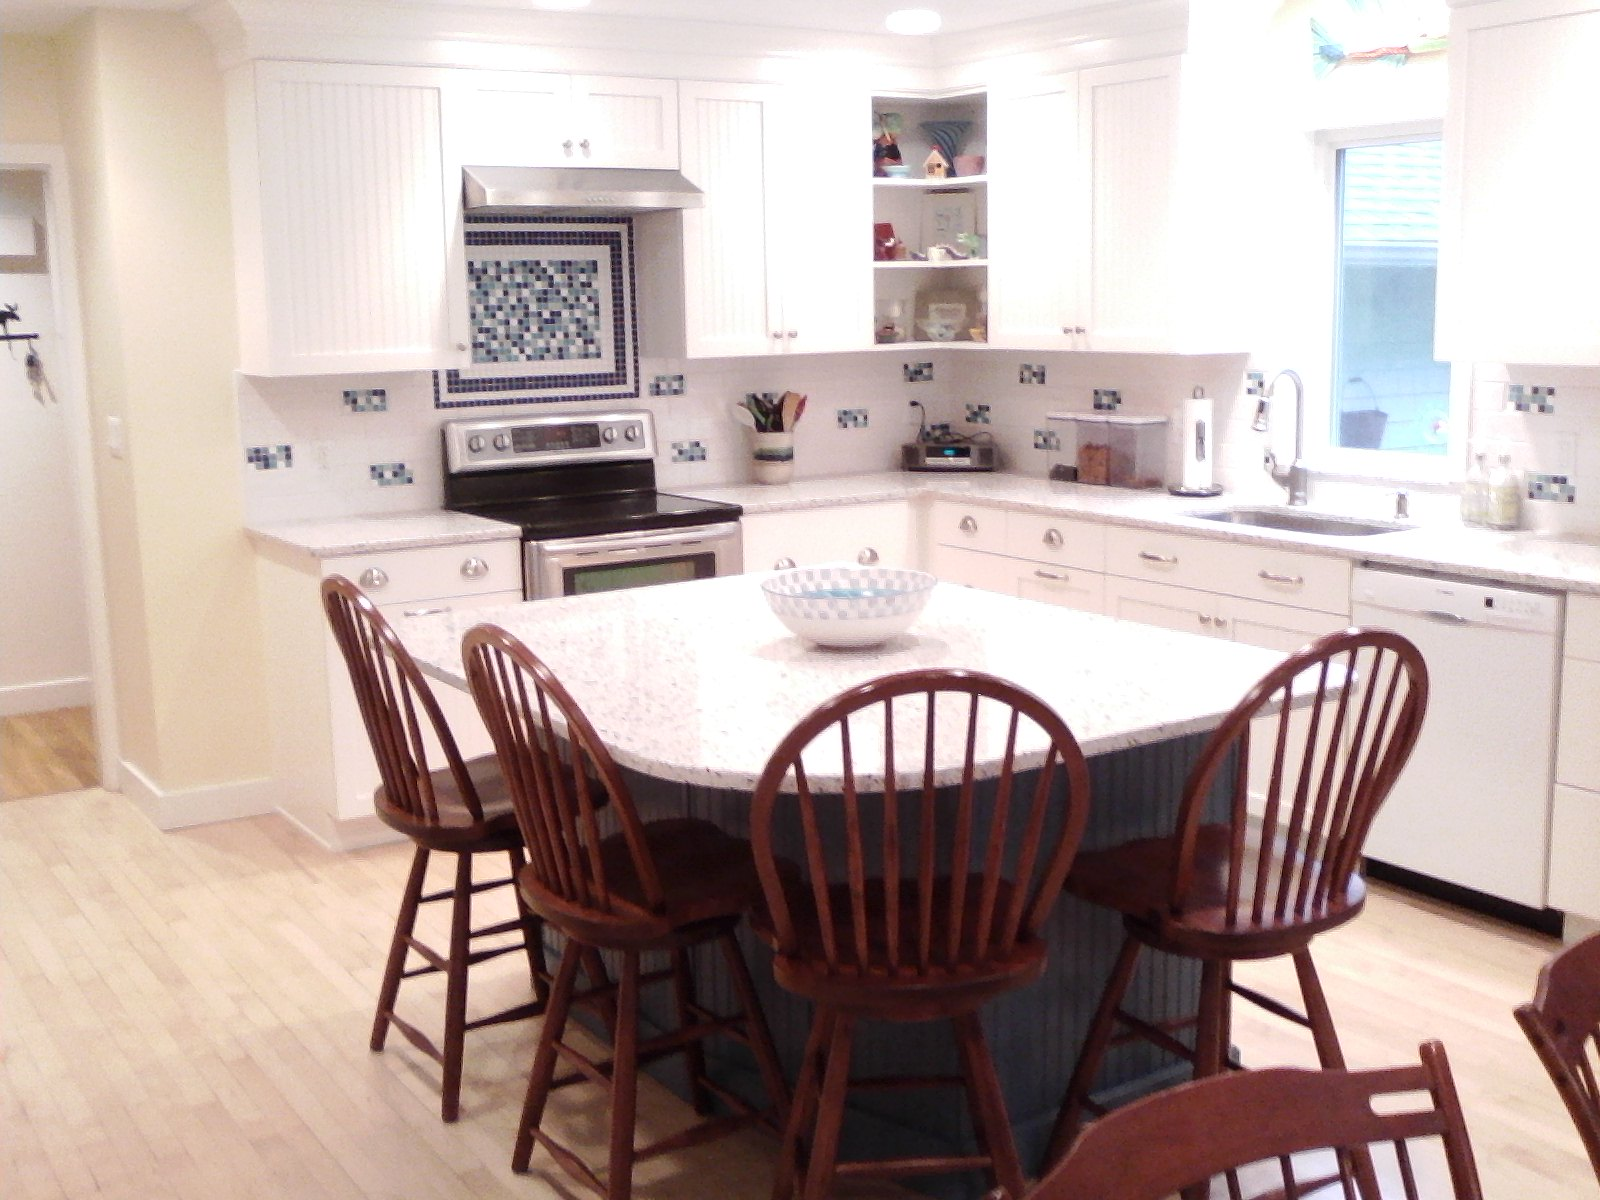 AFTER: THE L KITCHEN WITH ISLAND FOR 4